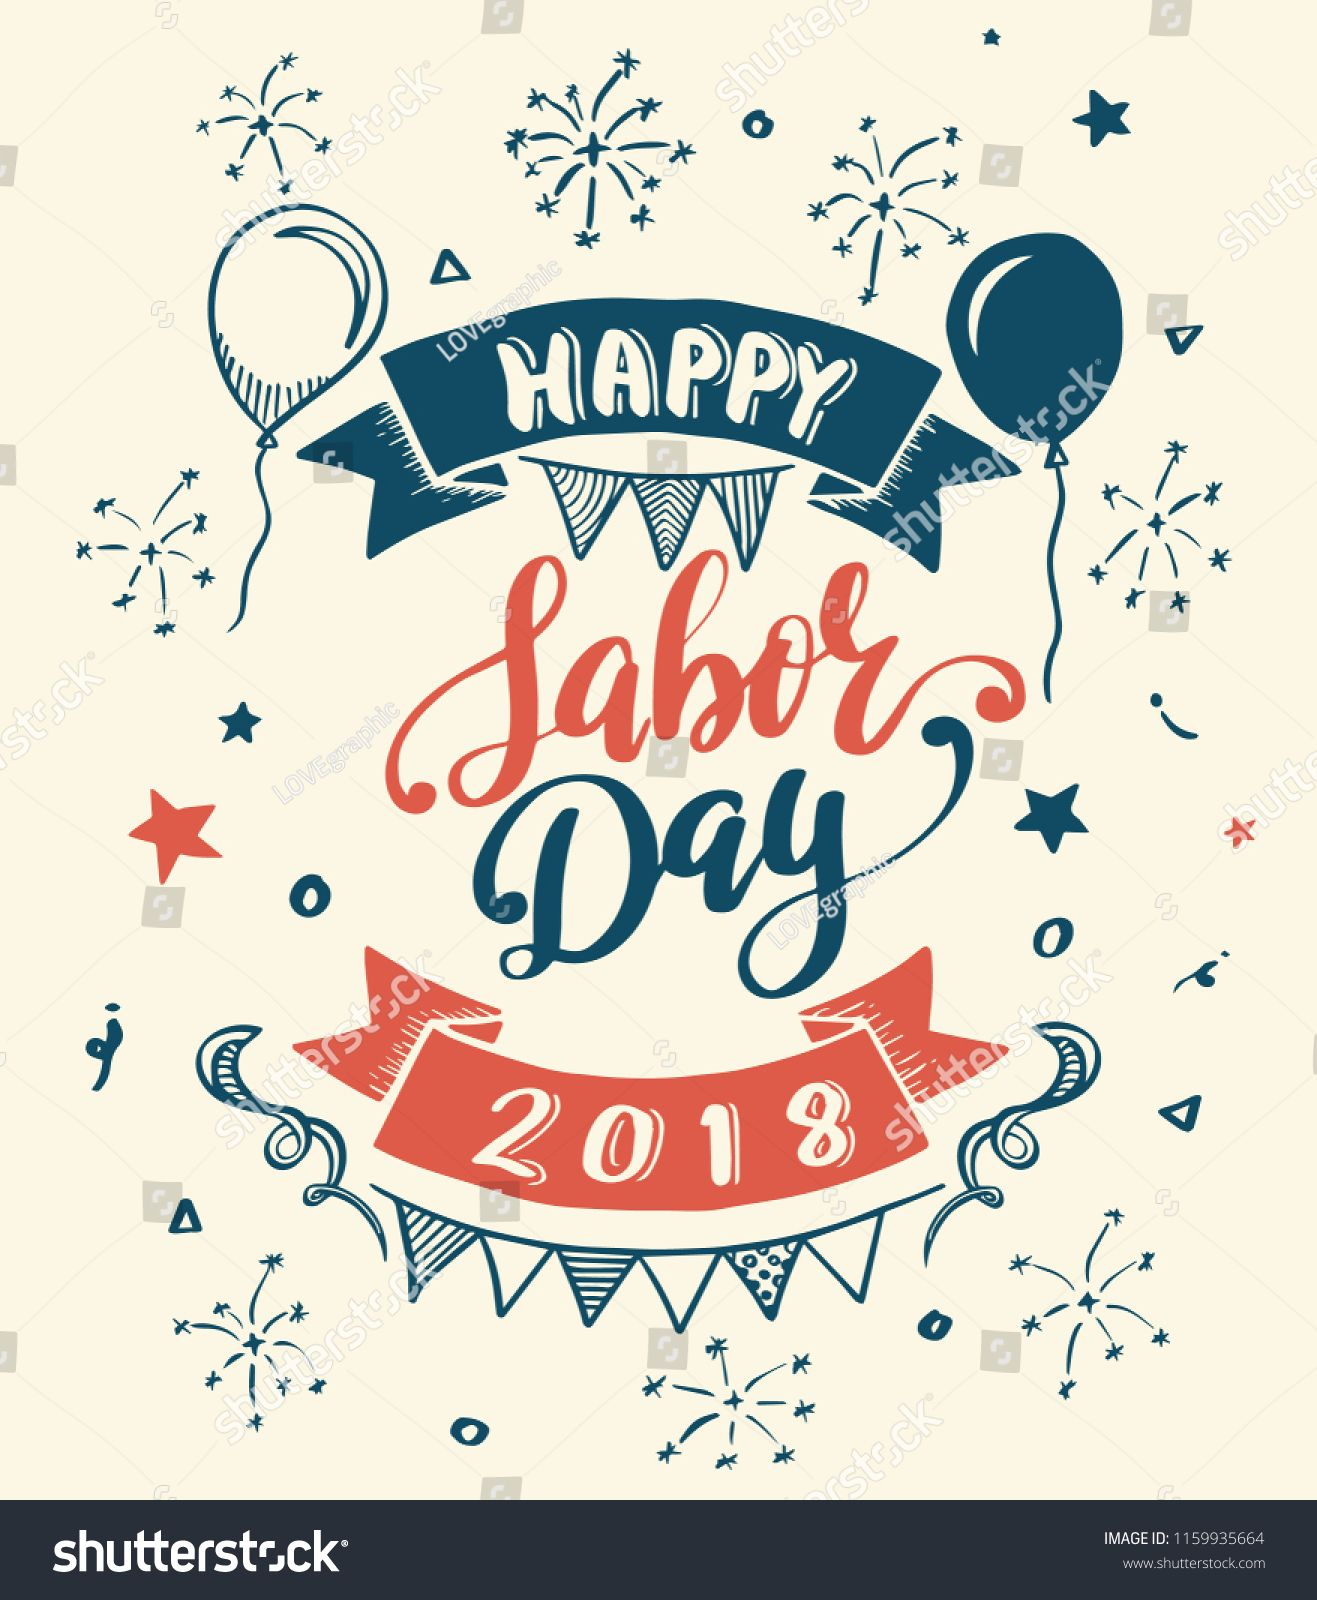 Happy Labor Day 2018 Lettering For Labour Day Greeting Card And Element On Promotion Poster Vector Illustration Lettering Labo Happy Labor Day Happy Lettering